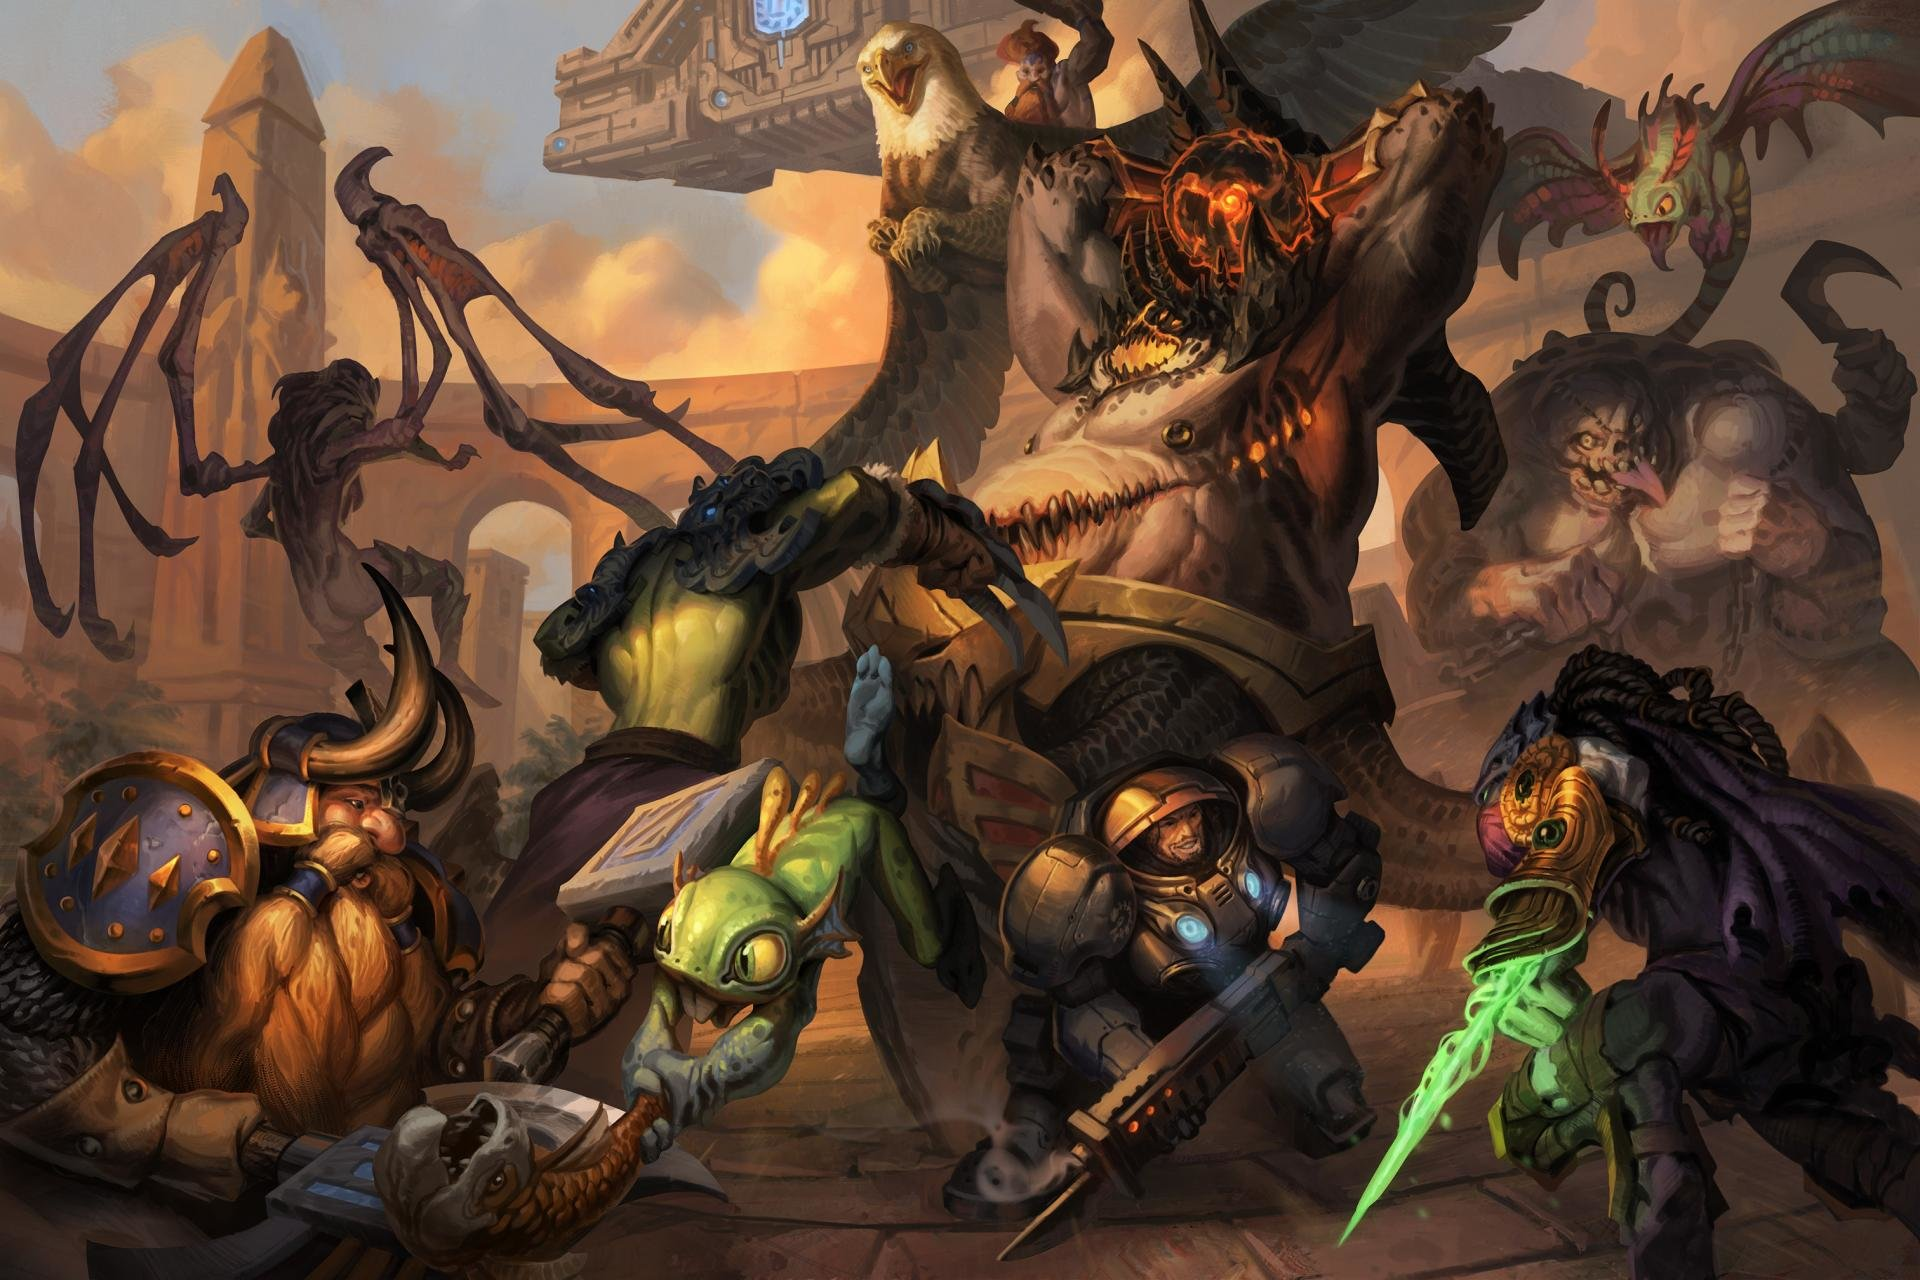 Free Heroes Of The Storm High Quality Wallpaper Id 259845 For Hd